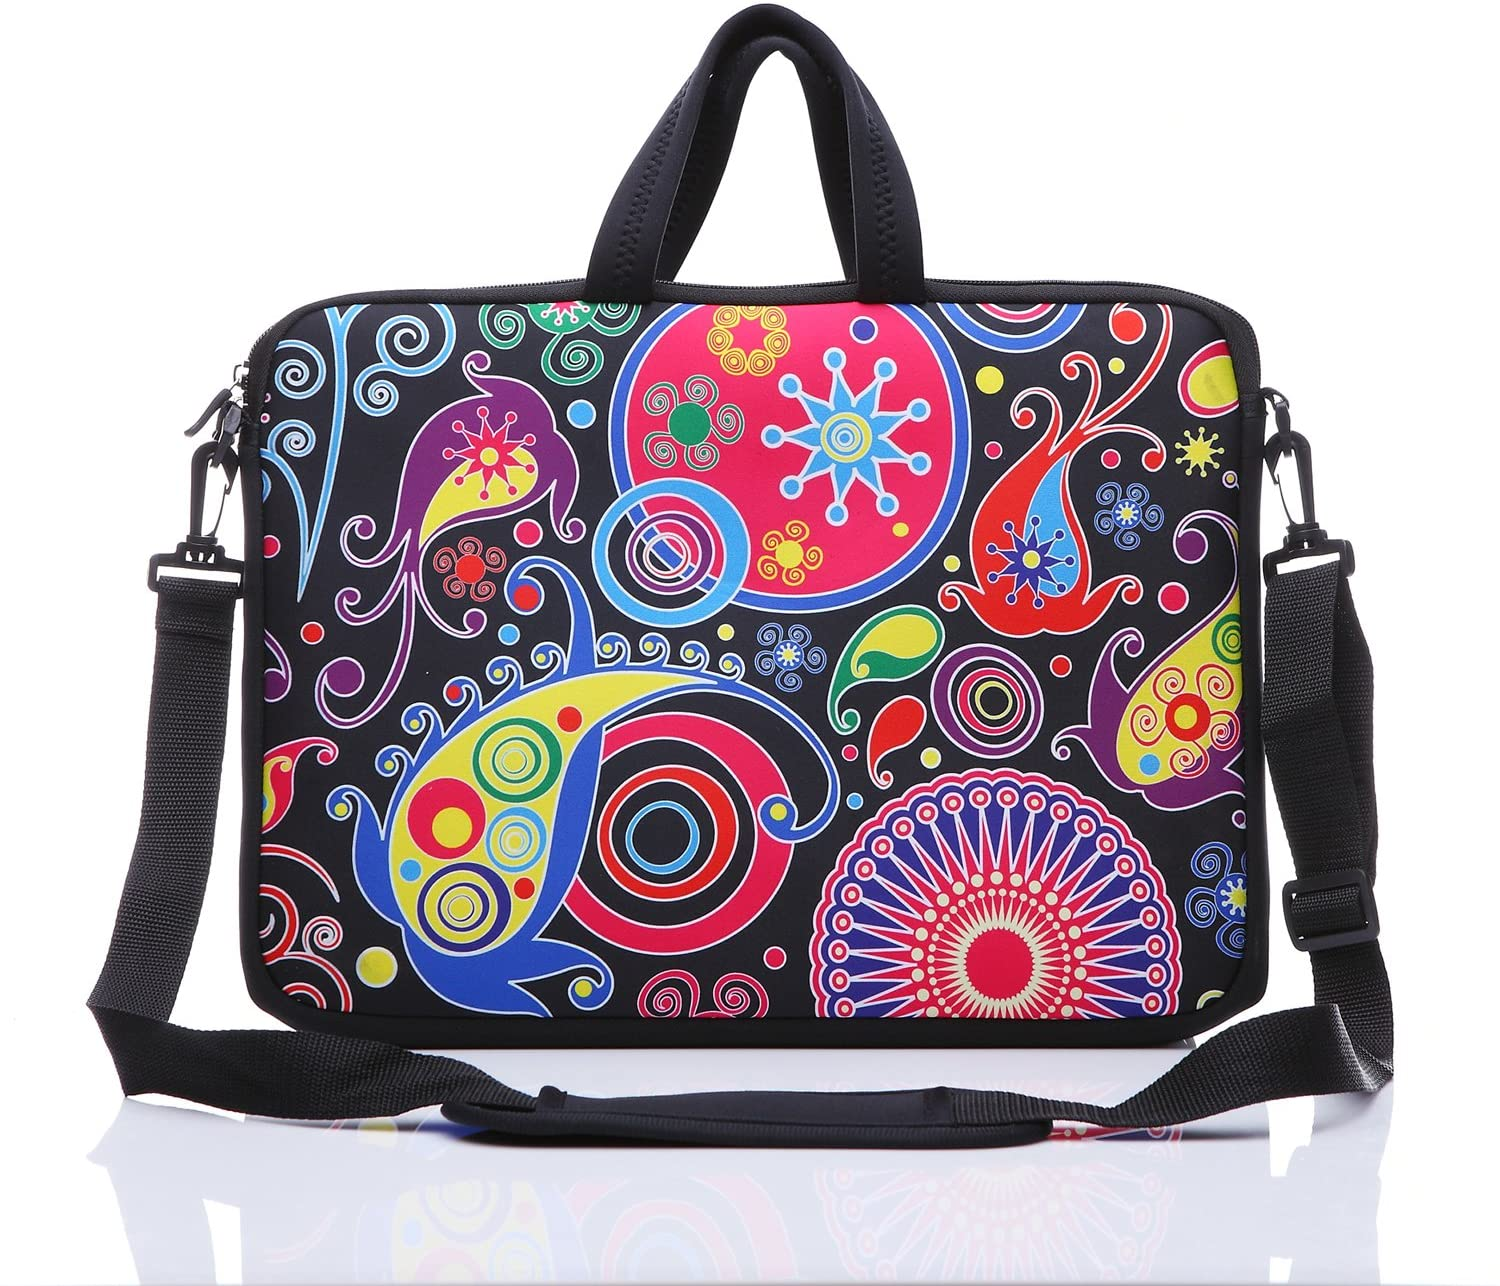 """YIDA 10-Inch Laptop Shoulder Sleeve Case and Tablet Bag for Most 9.7"""" 10"""" 10.1"""" 10.2"""" Ipad/Notebook/eBook/Readers (Classic Colourful)"""